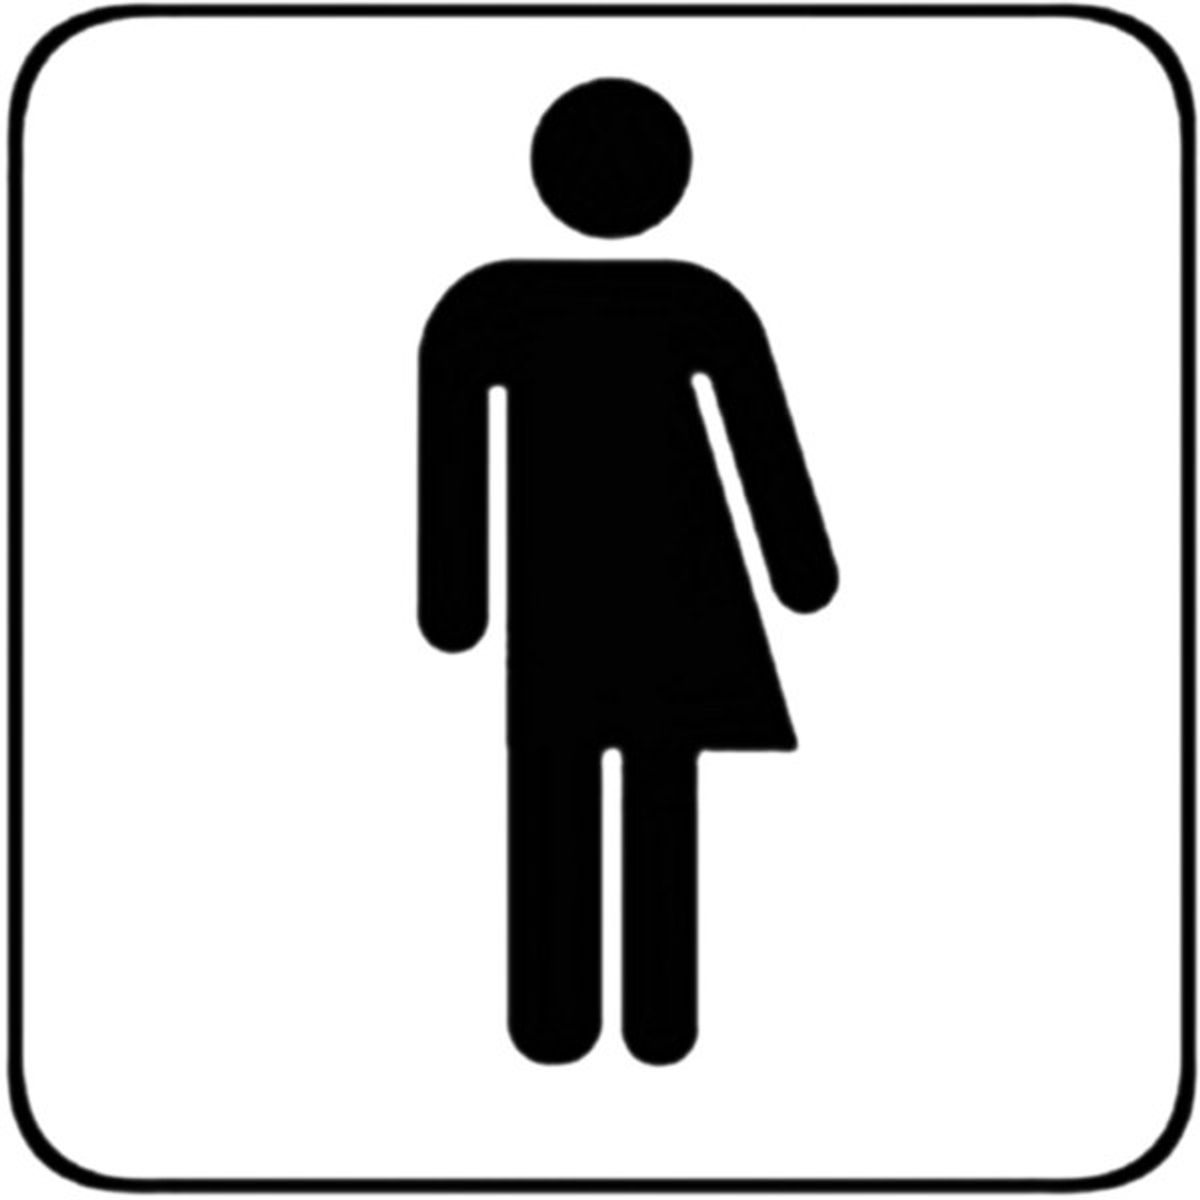 Separate vs. Unisex Bathrooms: The Pros and Cons